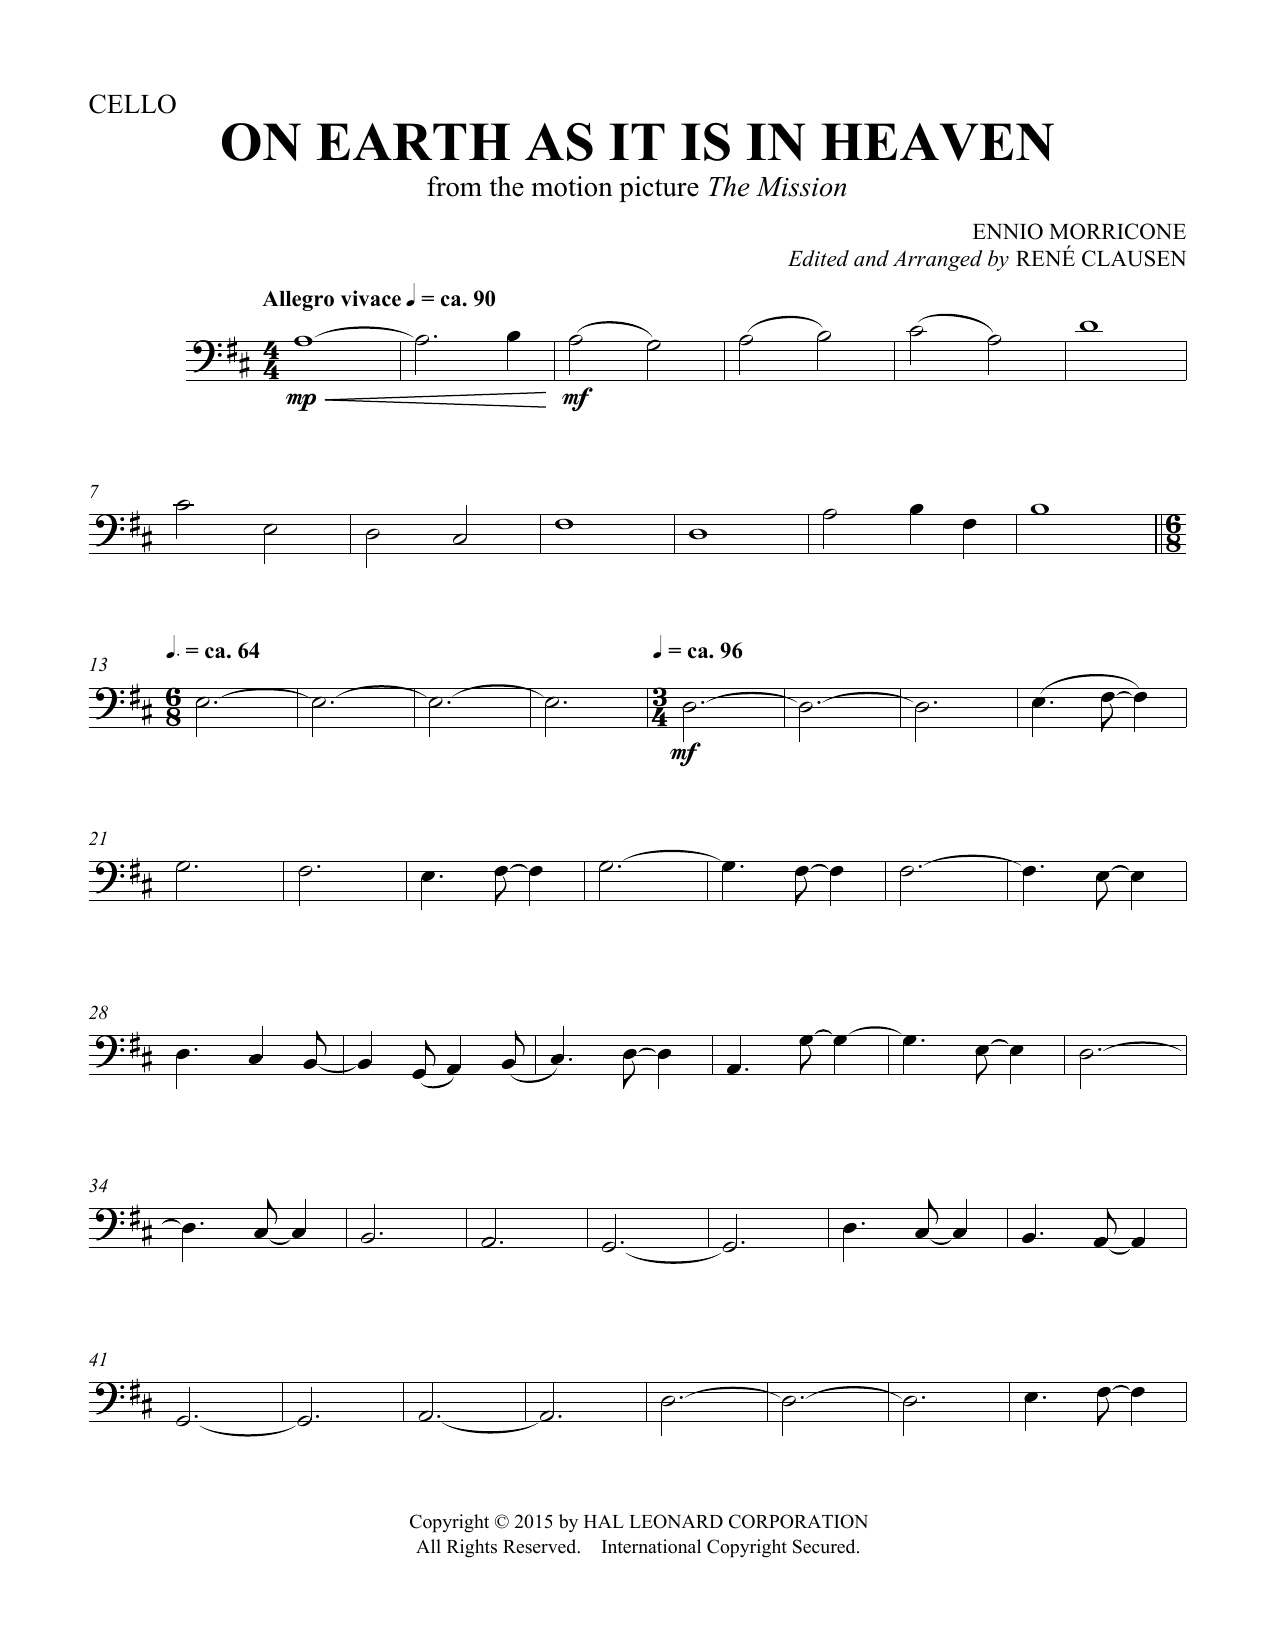 Rene Clausen On Earth As It Is In Heaven - Cello sheet music notes and chords. Download Printable PDF.